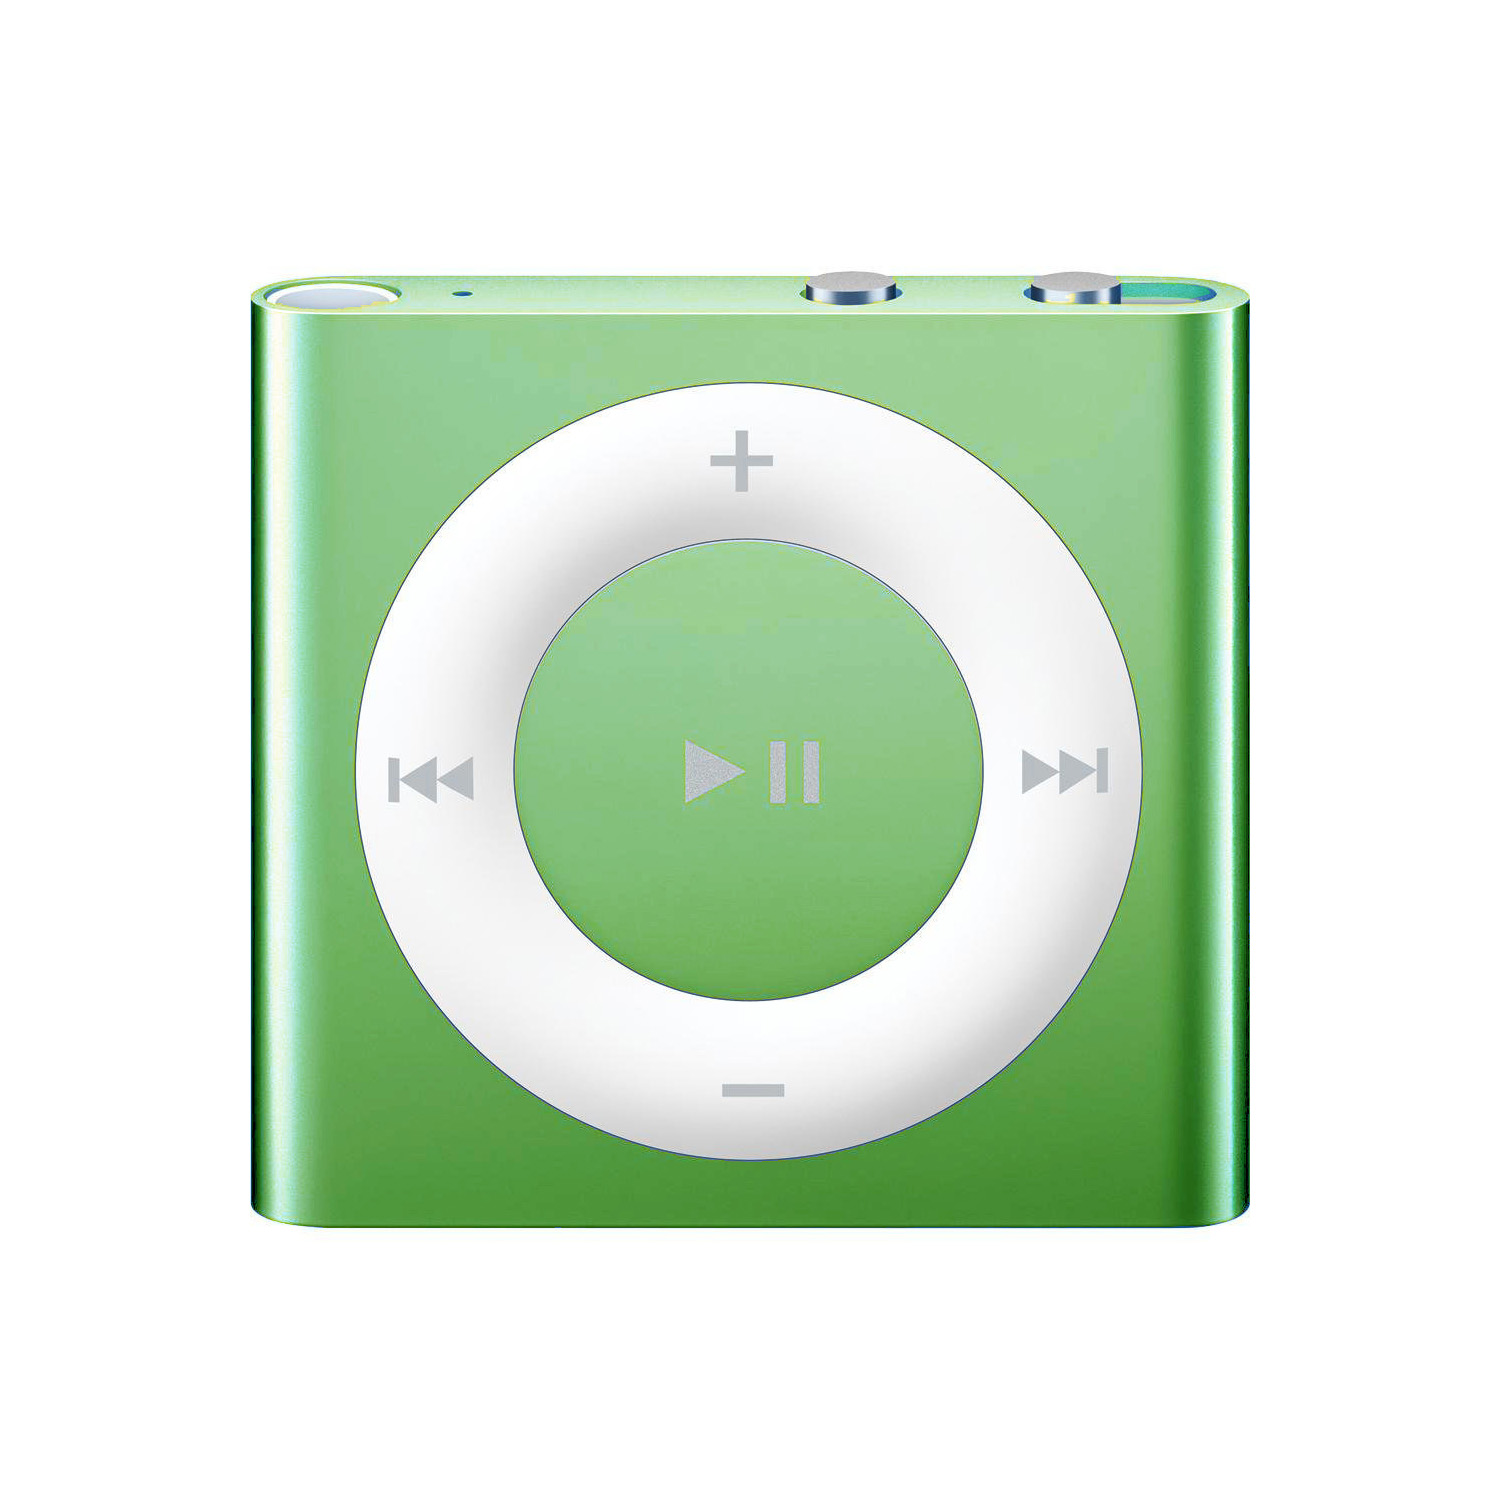 The new iPod touch